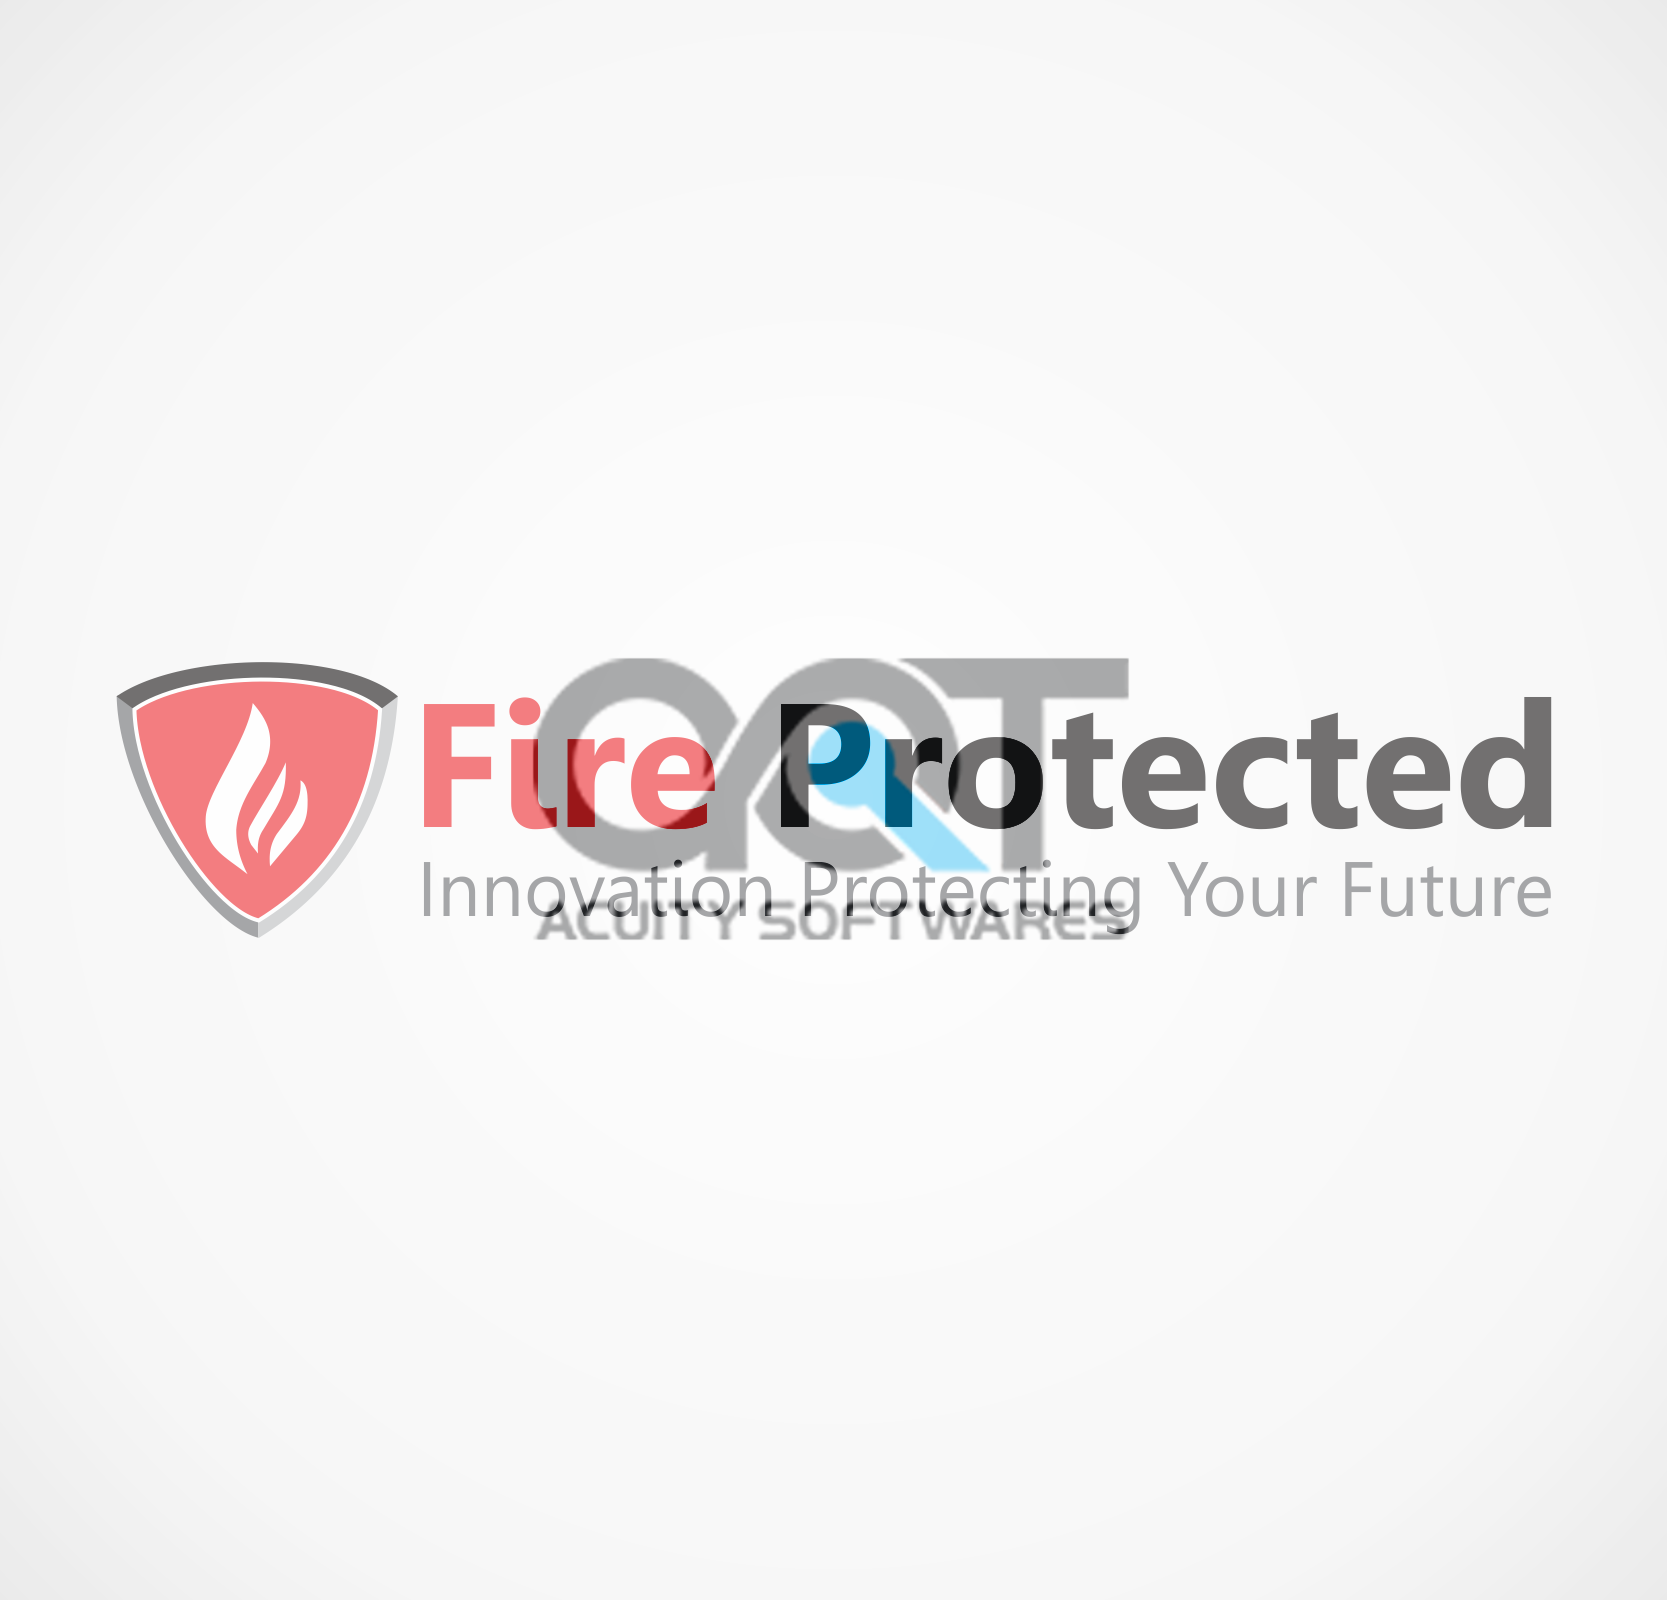 FIRE PROTECTED LOGO